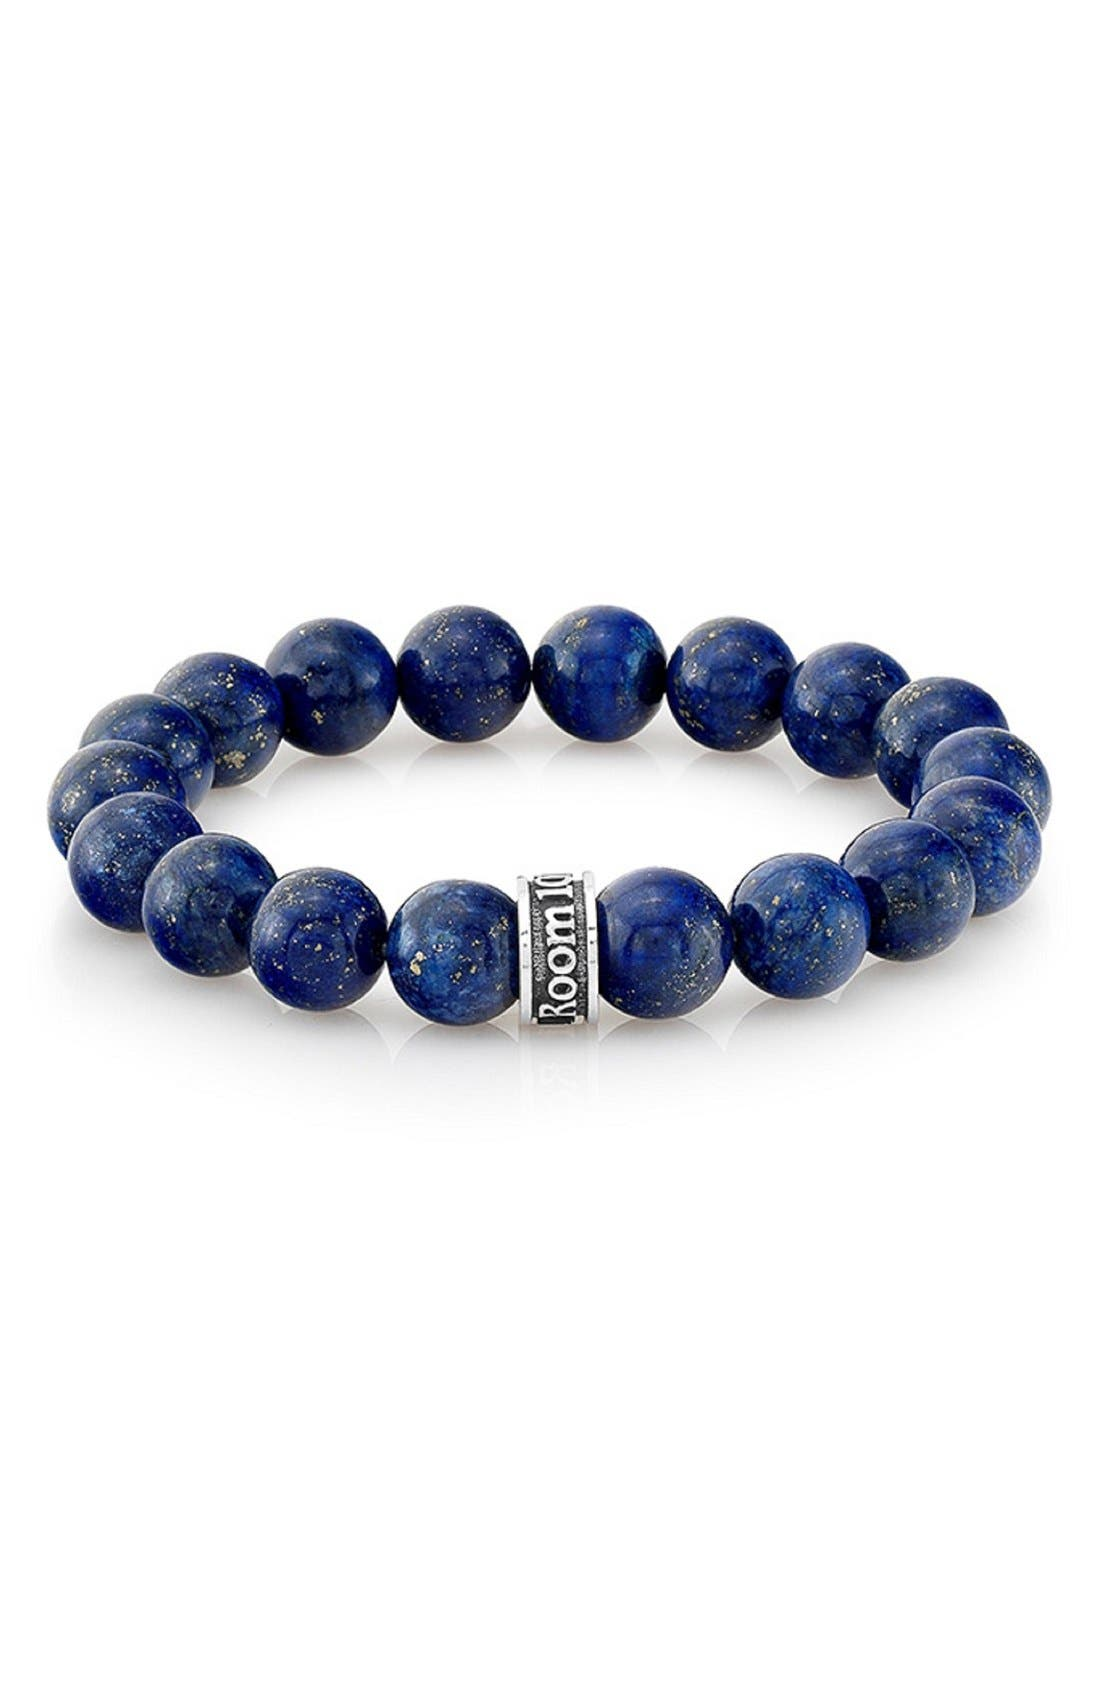 Alternate Image 1 Selected - Room101 Lapis Lazuli Bead Bracelet